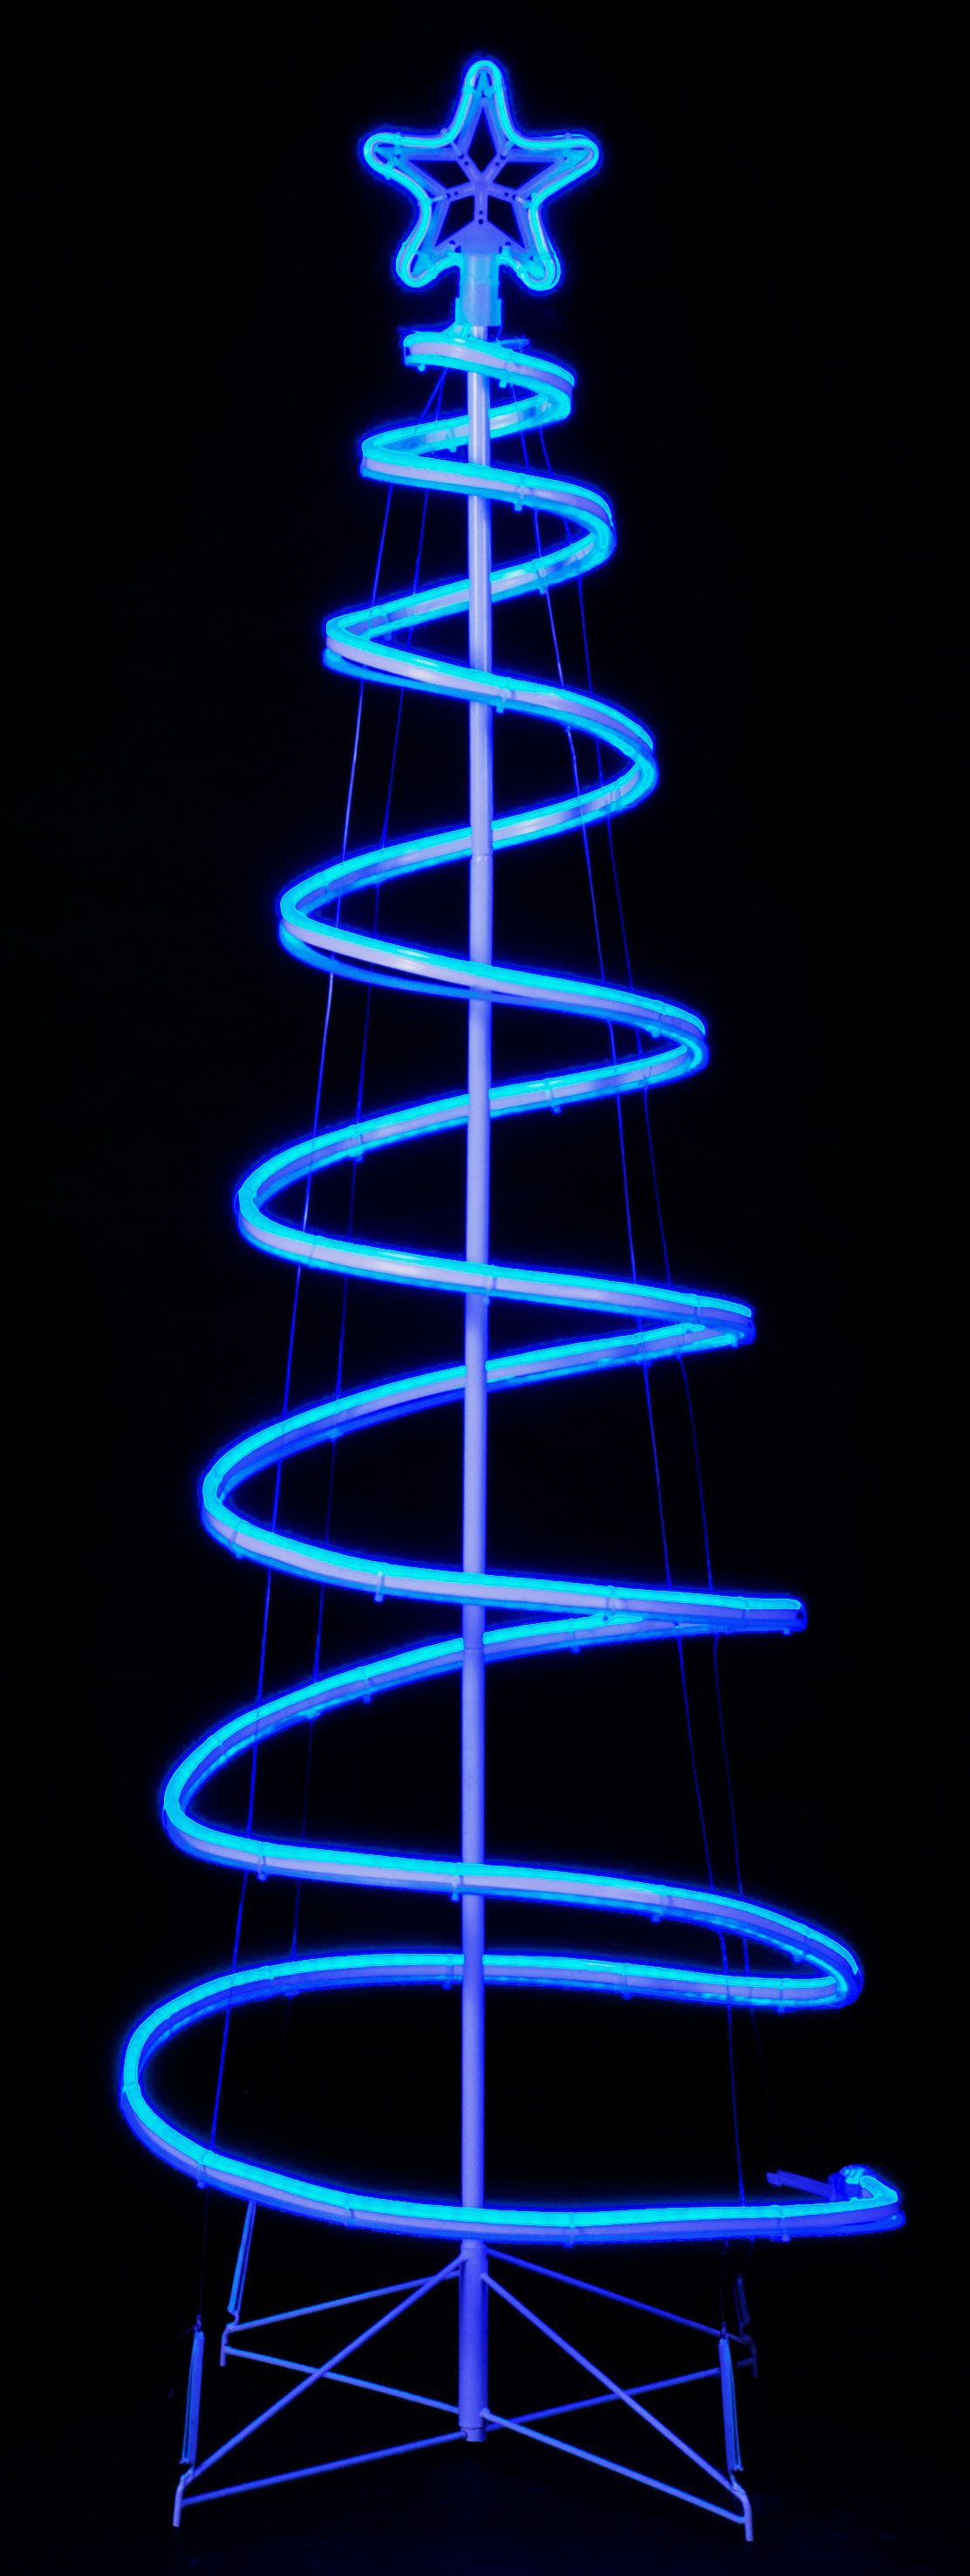 Sale On 6ft Neon Flex Spiral Tree With Static Blue Leds